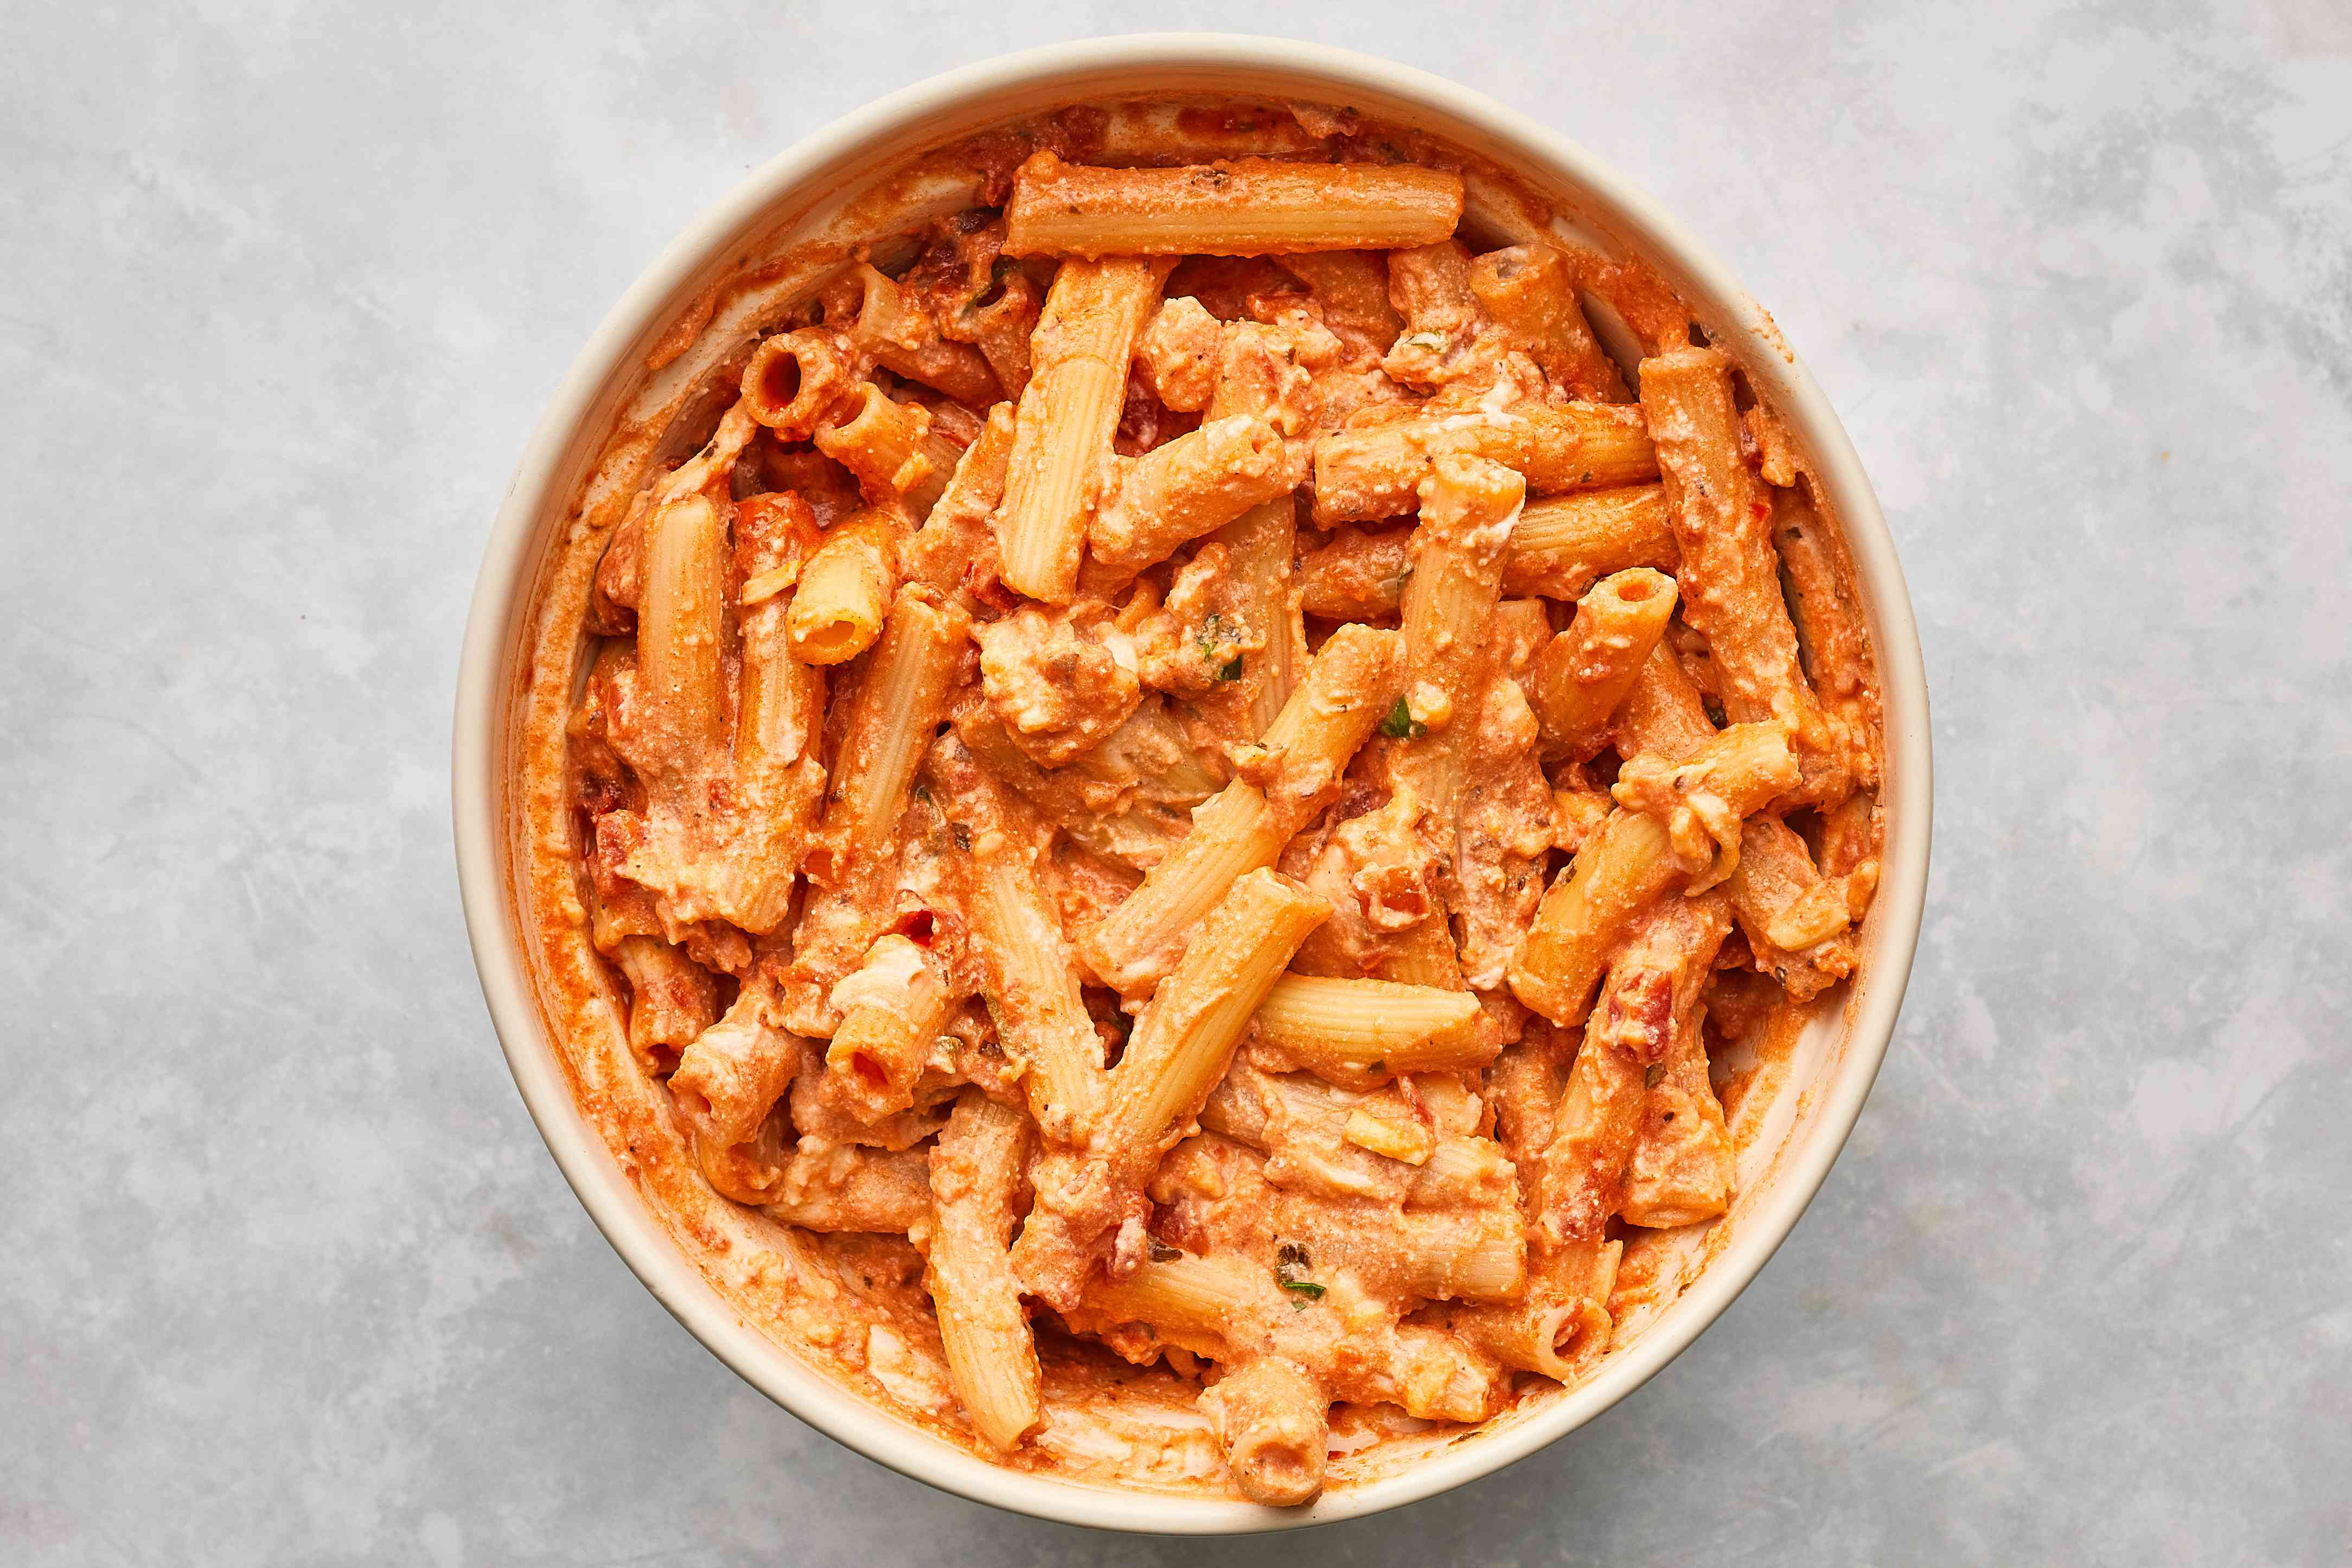 ziti with tomato sauce and ricotta mixture in a bowl